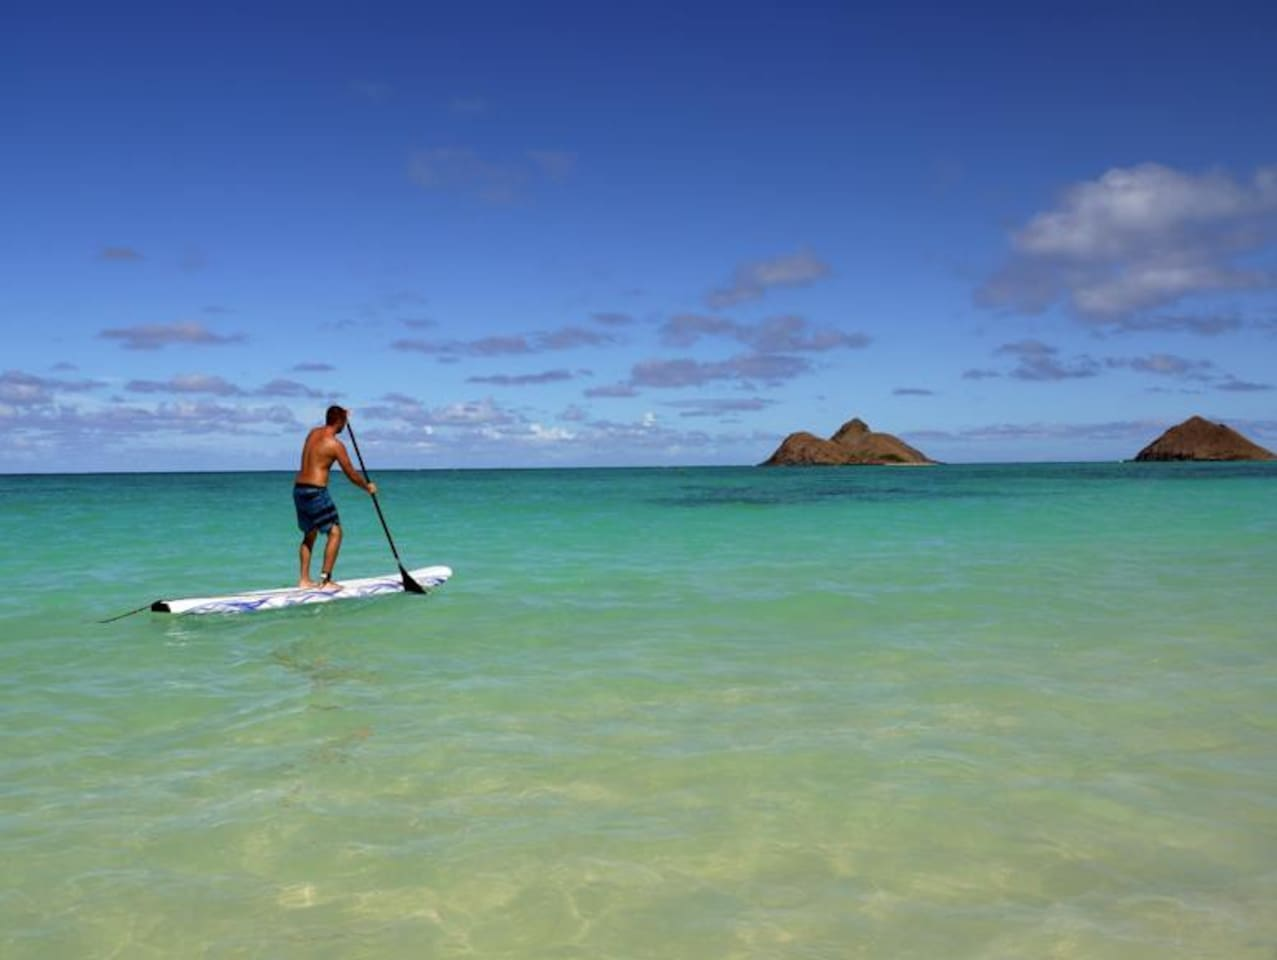 Enjoy the peace and serenity at Kailua Blue Ocean Breeze